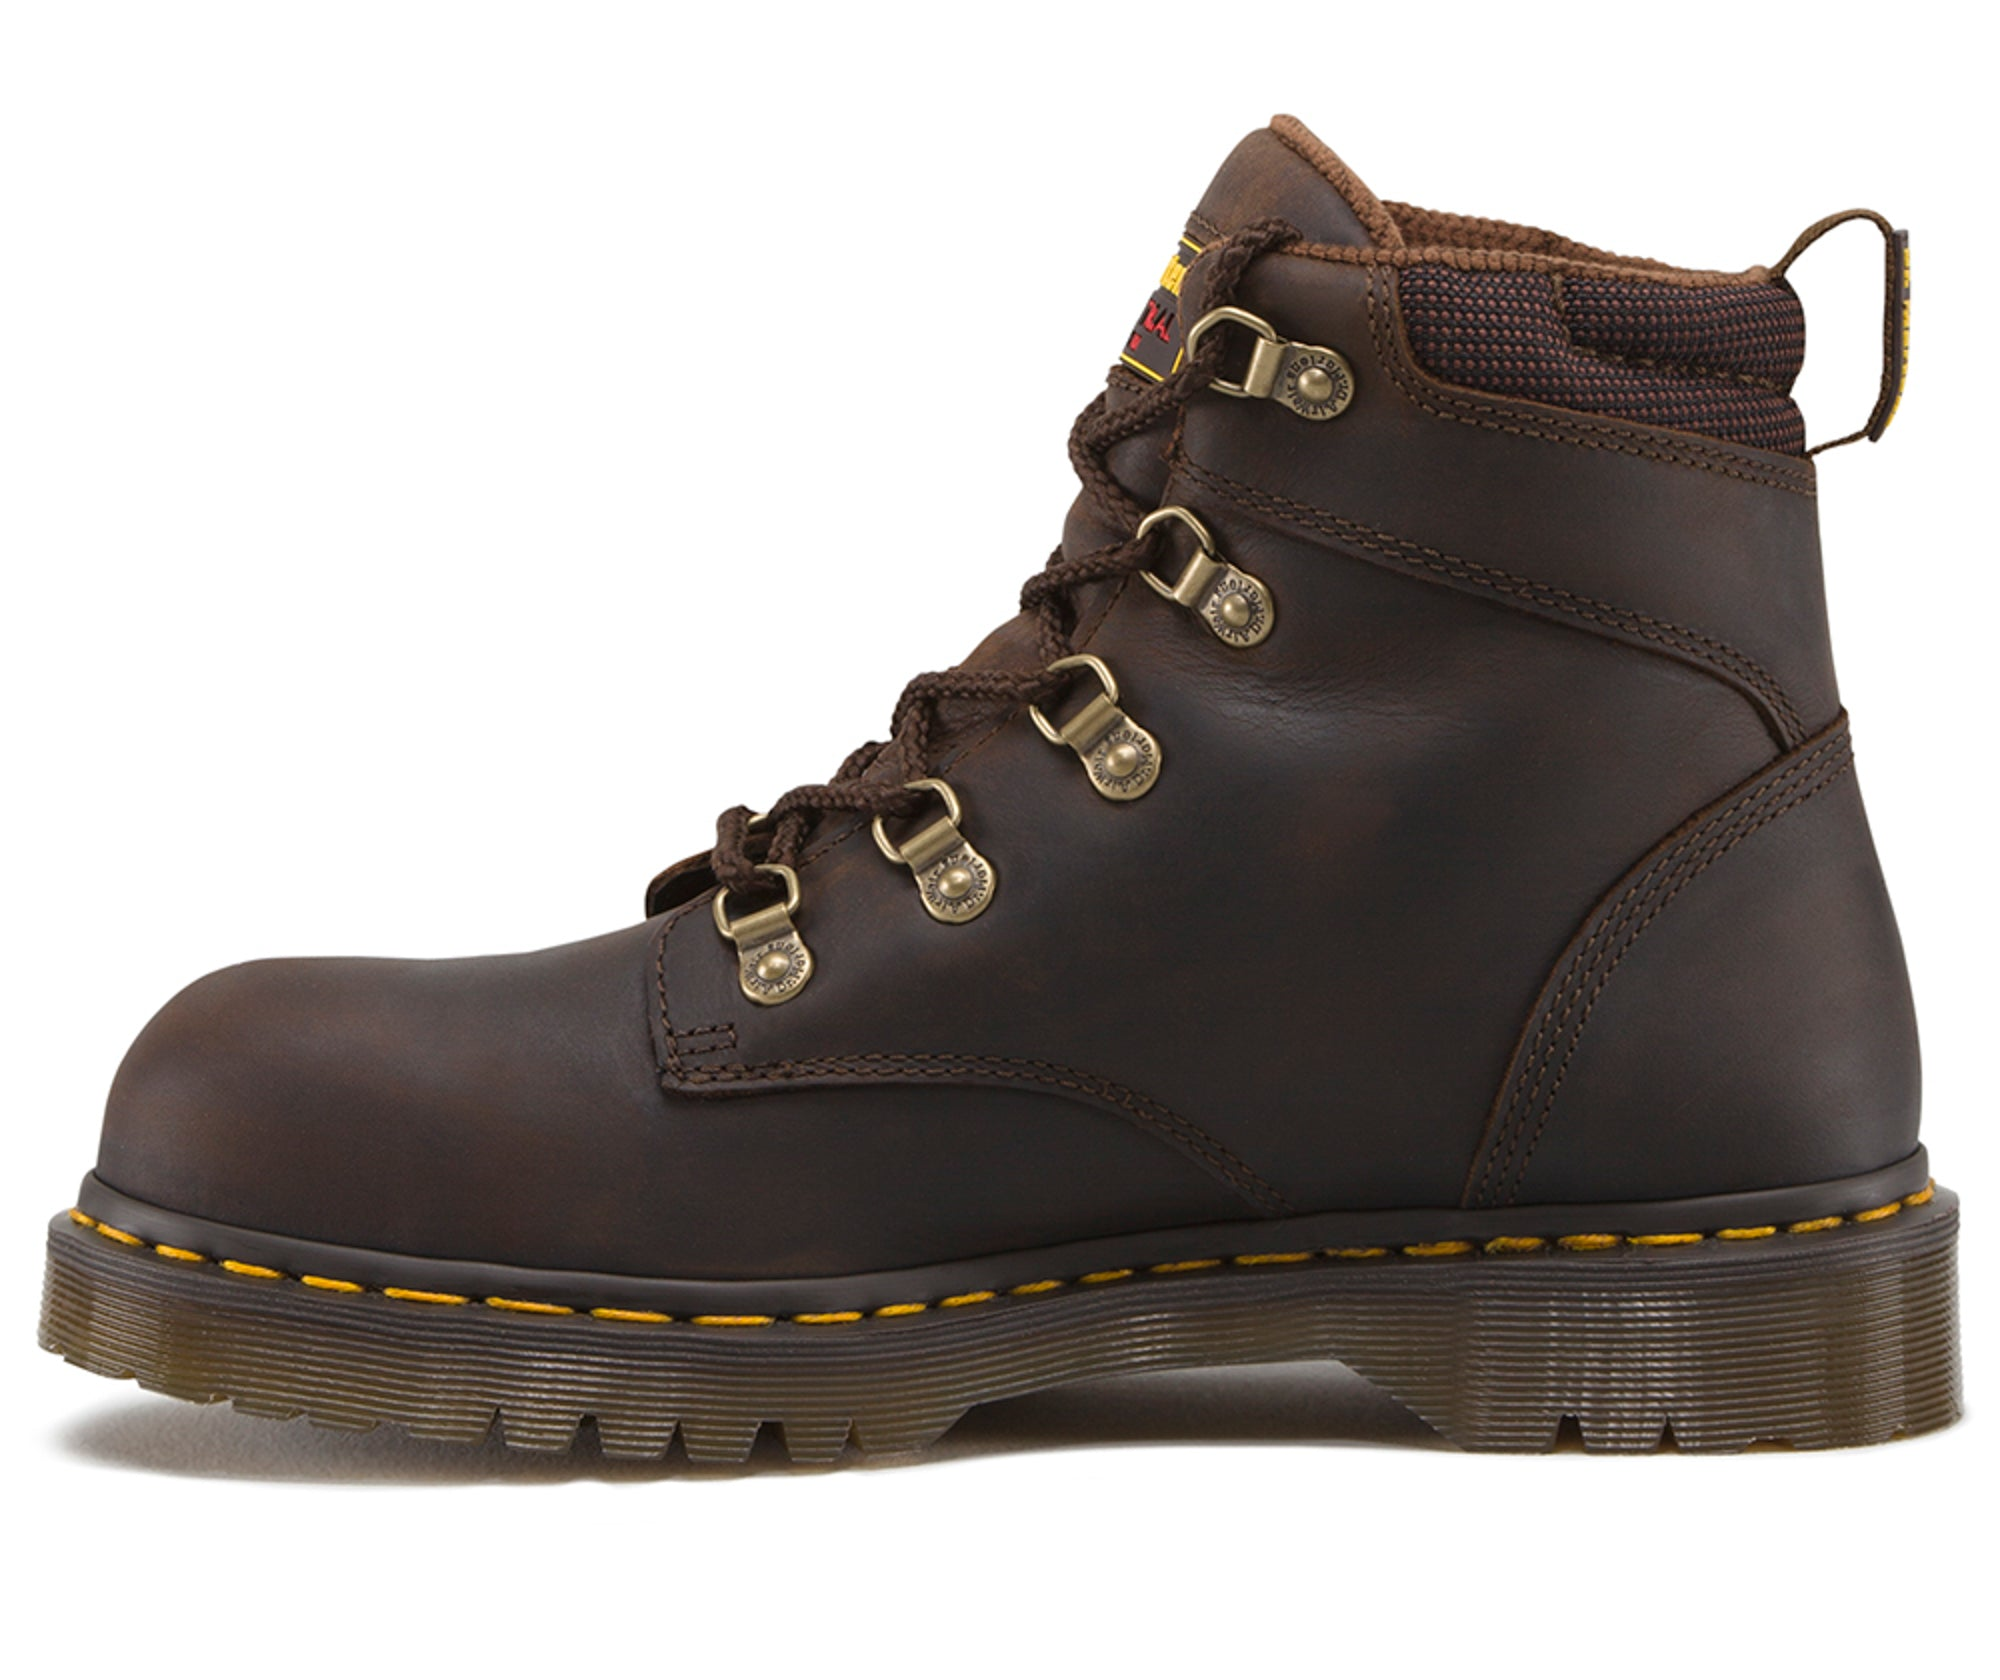 bbe85193e52 Dr Martens Gaucho Unisex Holkham Sd ST Volcano Leather Work Boots ...